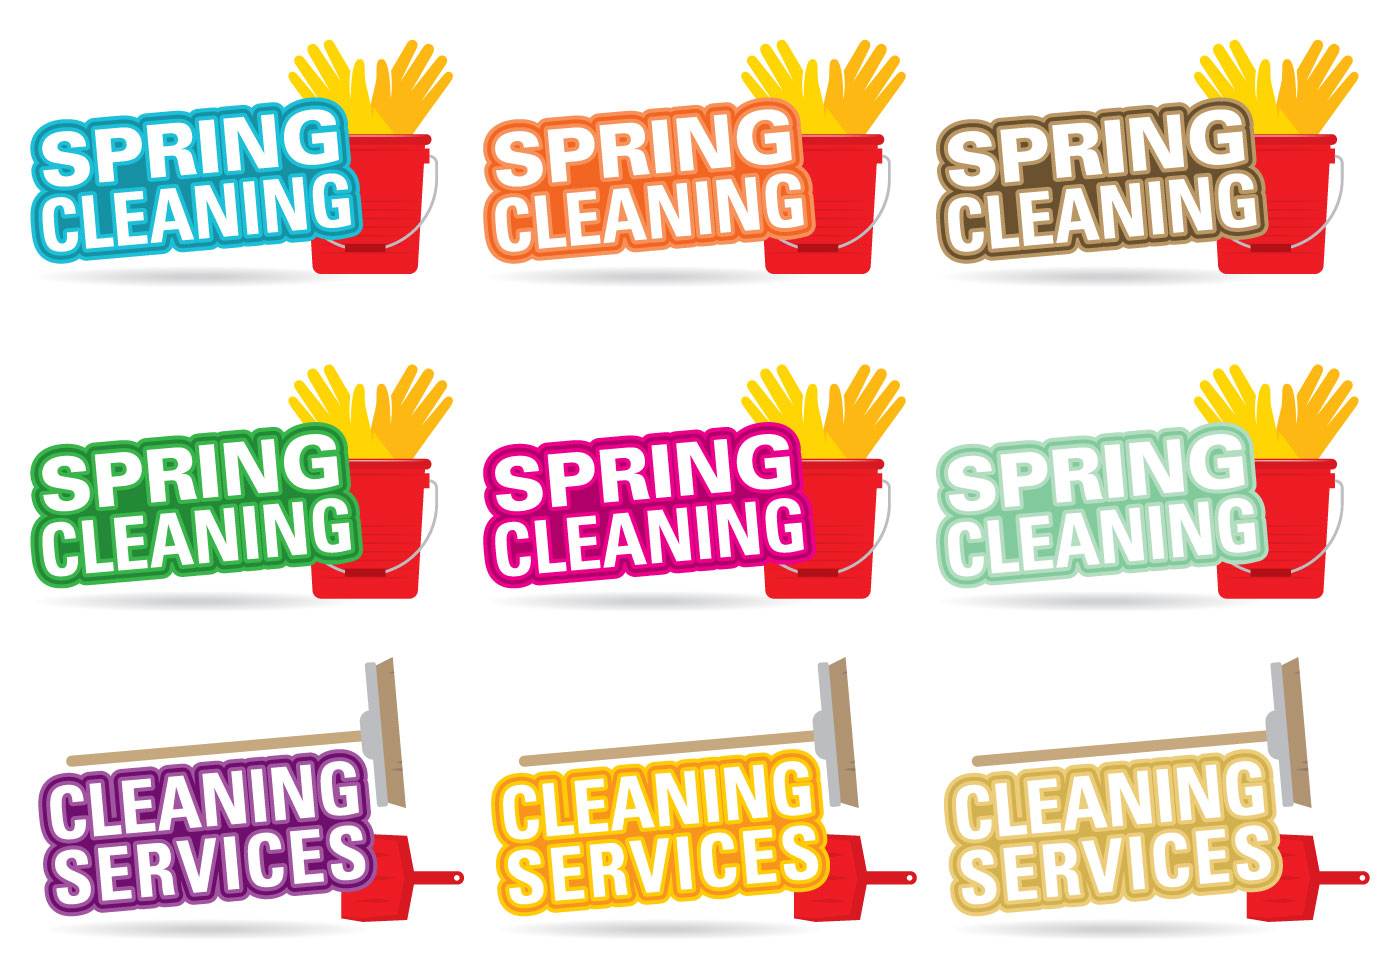 Spring Cleaning Title Vectors Download Free Vector Art